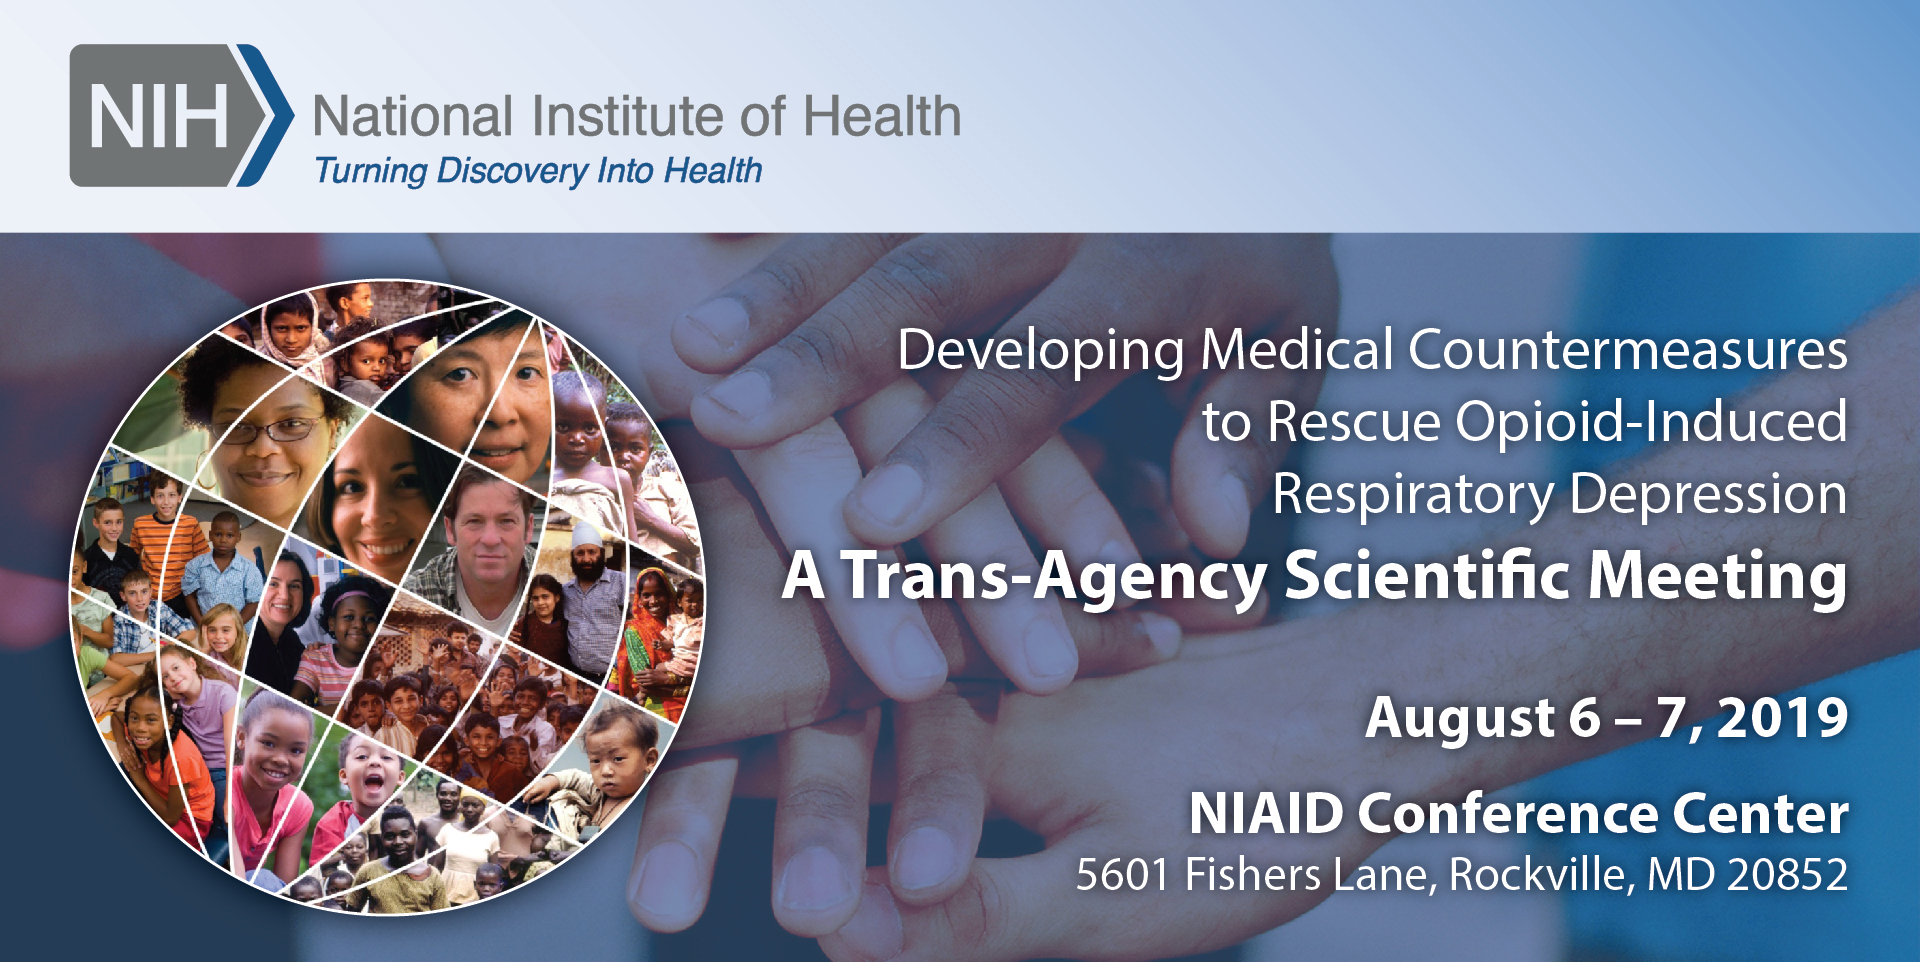 Developing Medical Countermeasures to Rescue Opioid-Induced Respiratory Depression (A Trans-Agency Scientific Meeting)